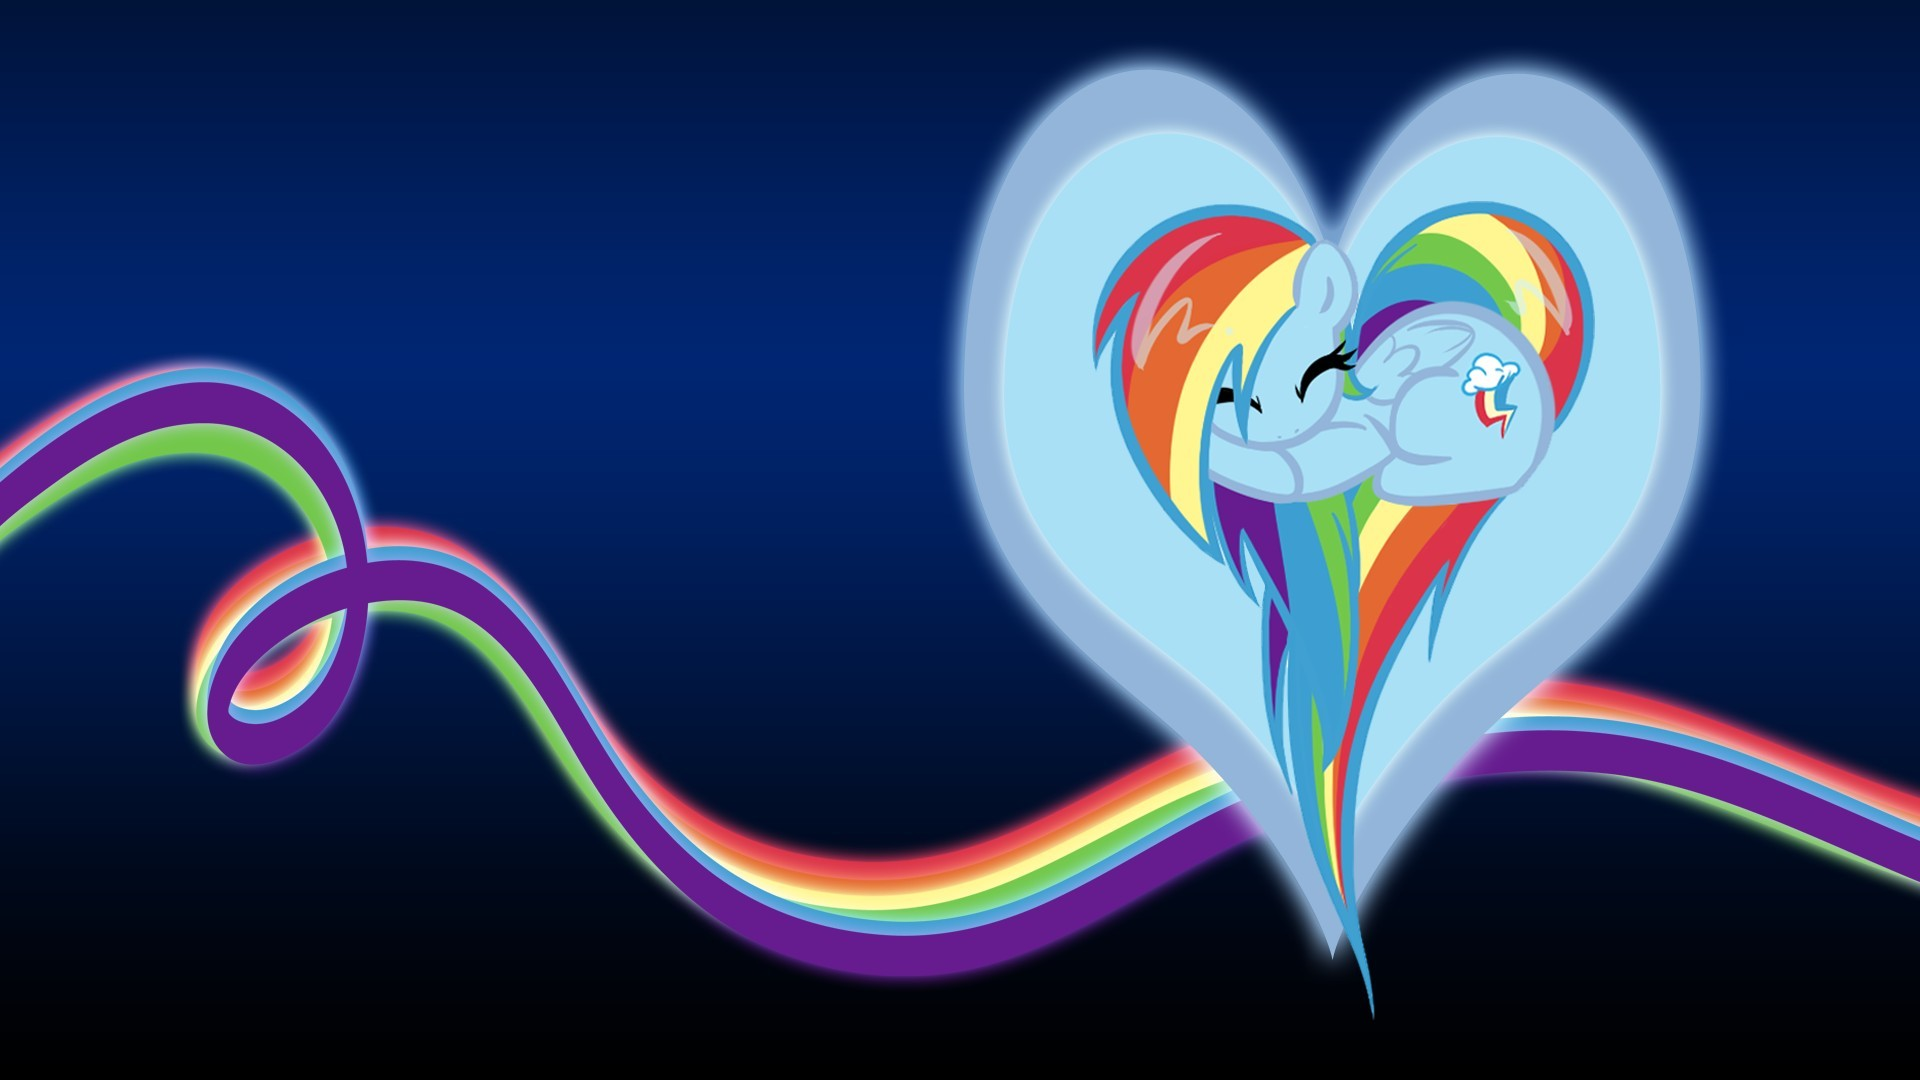 my little pony rainbow dash backgrounds wallpaper | allwallpaper.in